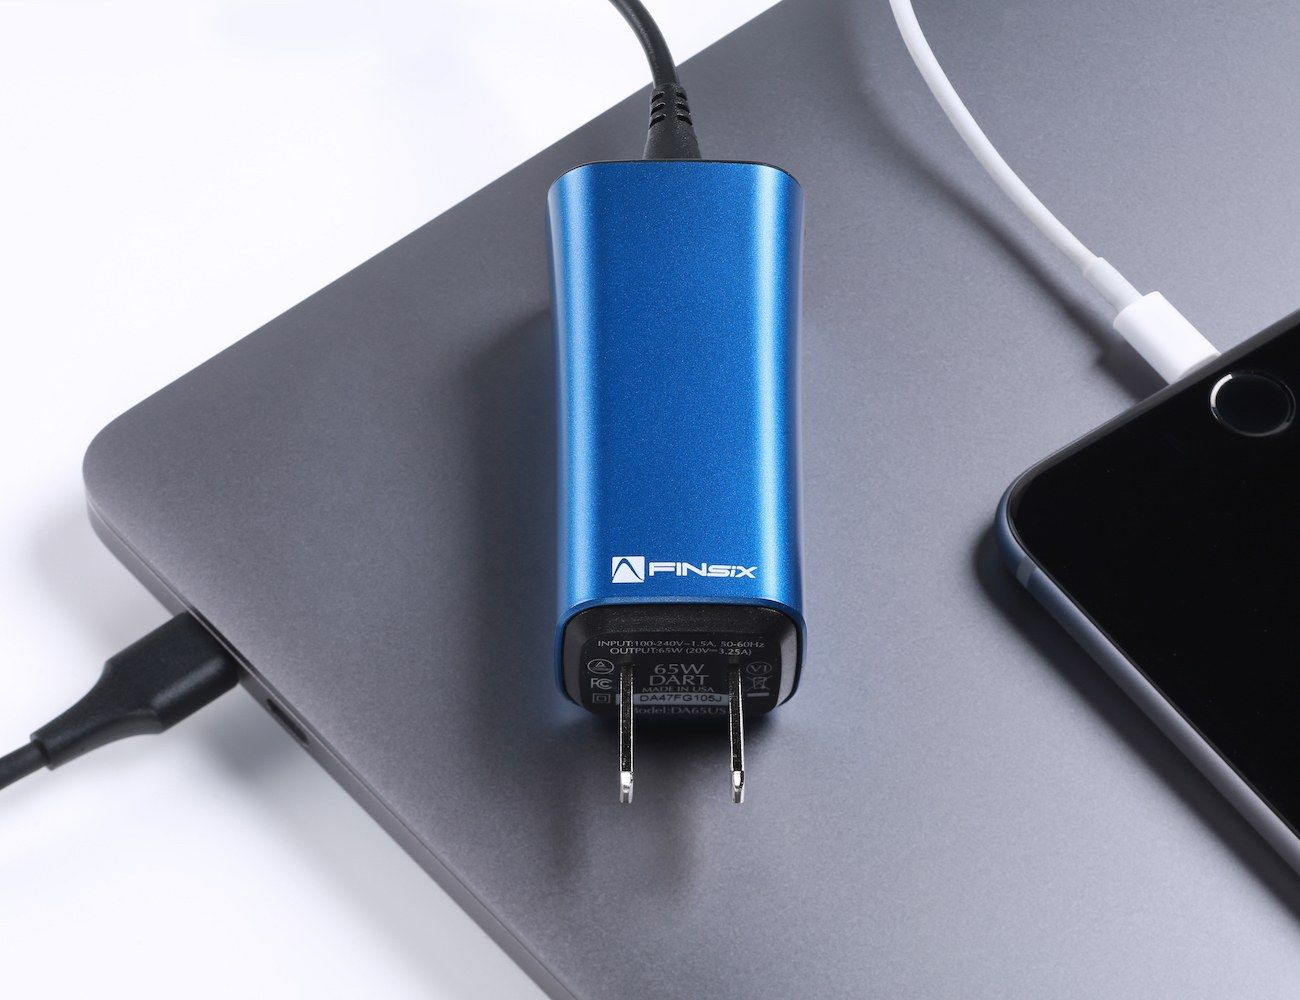 DART-C Smallest Laptop Charger is five times smaller than the ones available in the market today.